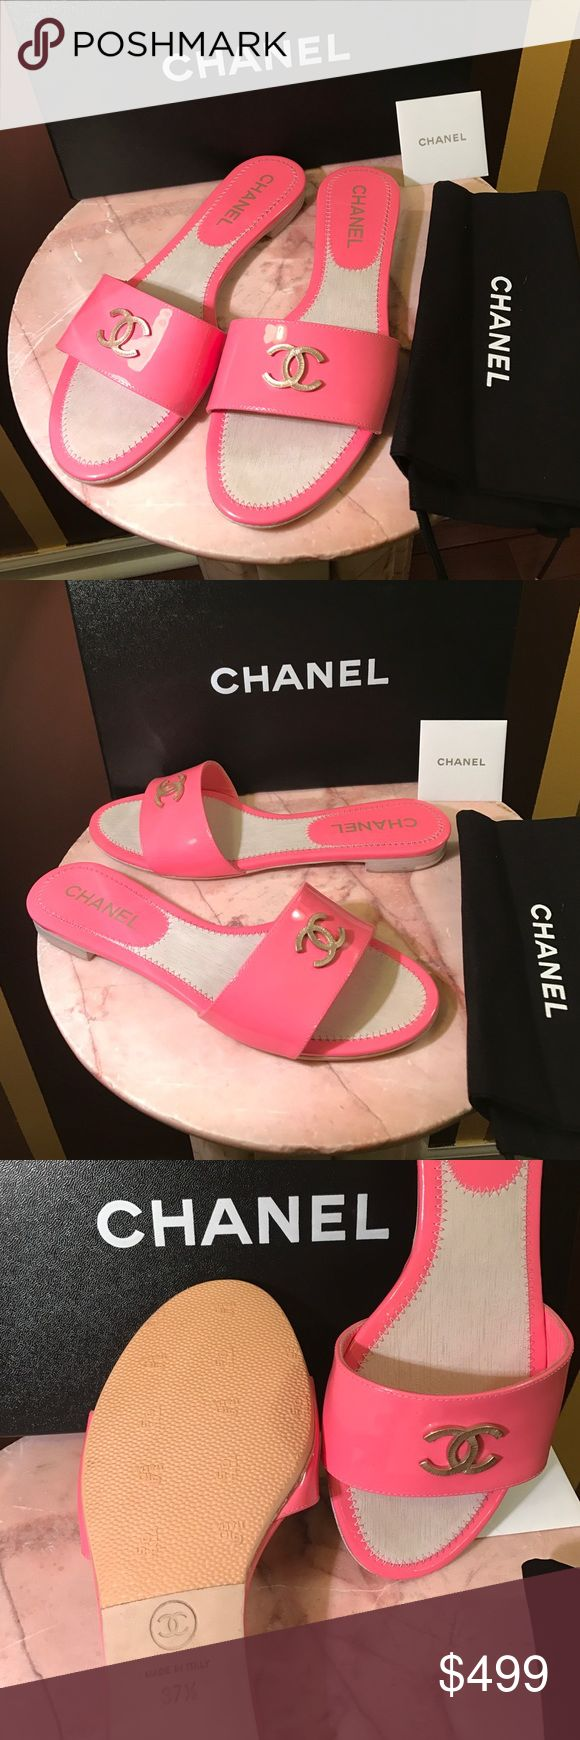 All new Chanel mules pink 💯 Authentic and new with Box and tags Chanel mules pink size 37.5 original price was $ 895 CHANEL Shoes Sandals